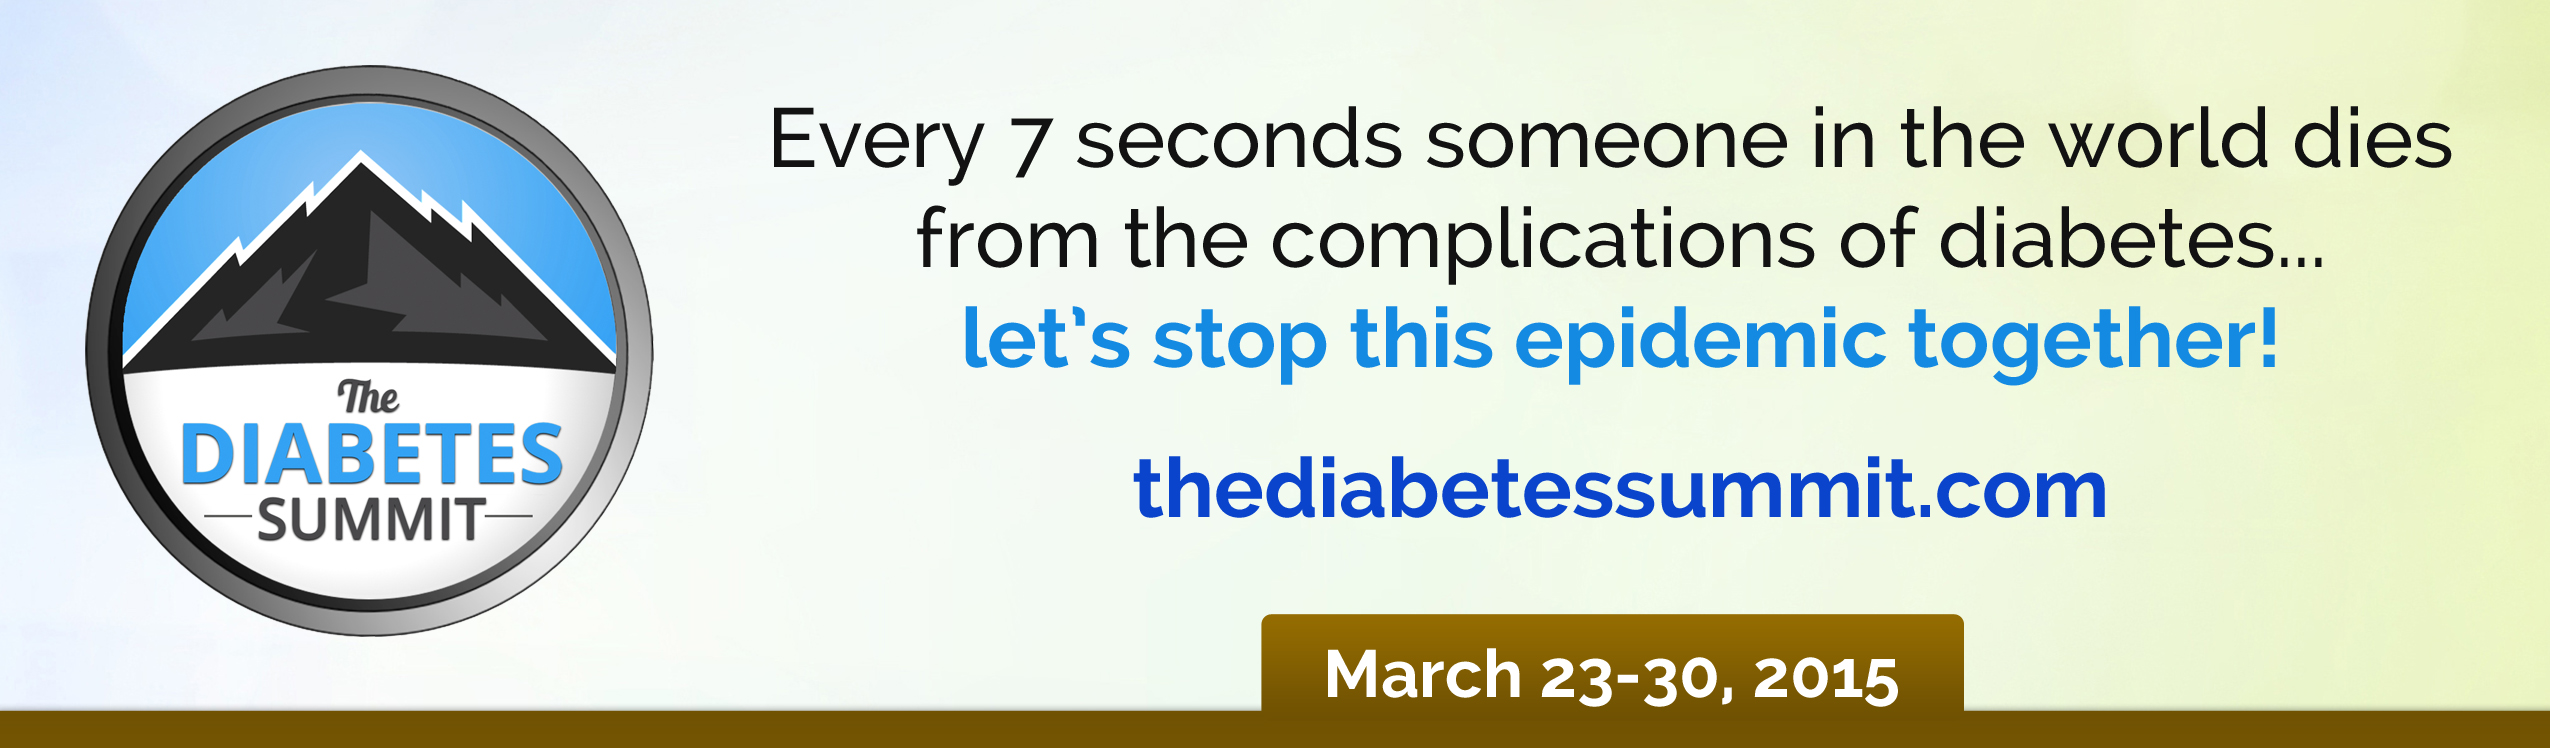 DiabetesSummit_EmailHeader_brown